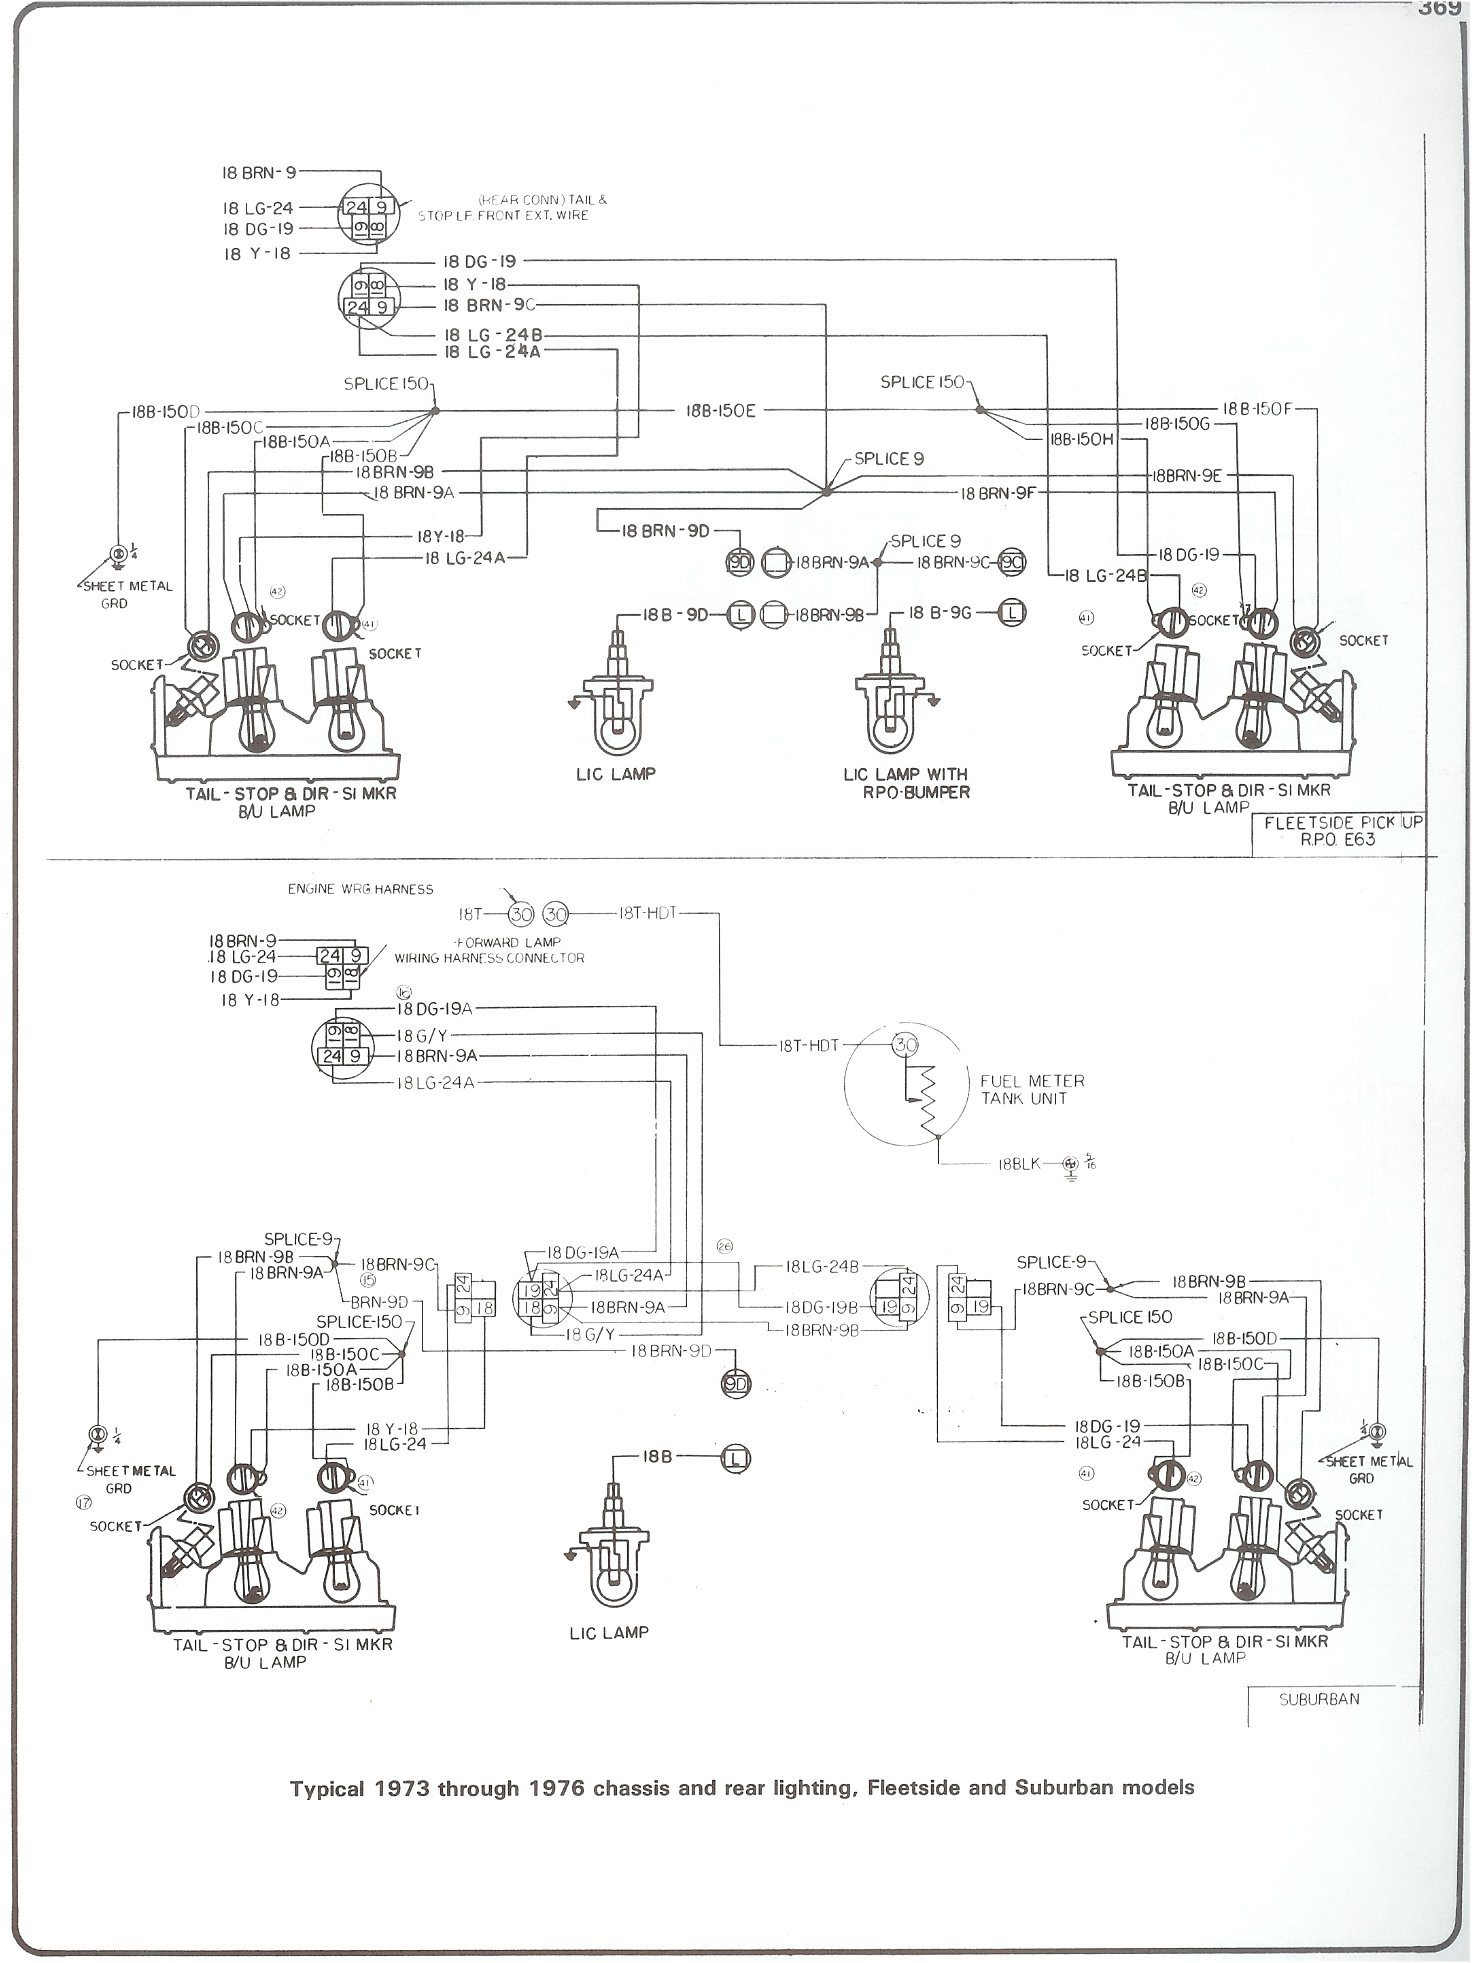 1987 chevy truck headlight wiring diagram complete 73-87 wiring diagrams 1987 chevy truck door wiring harness #9